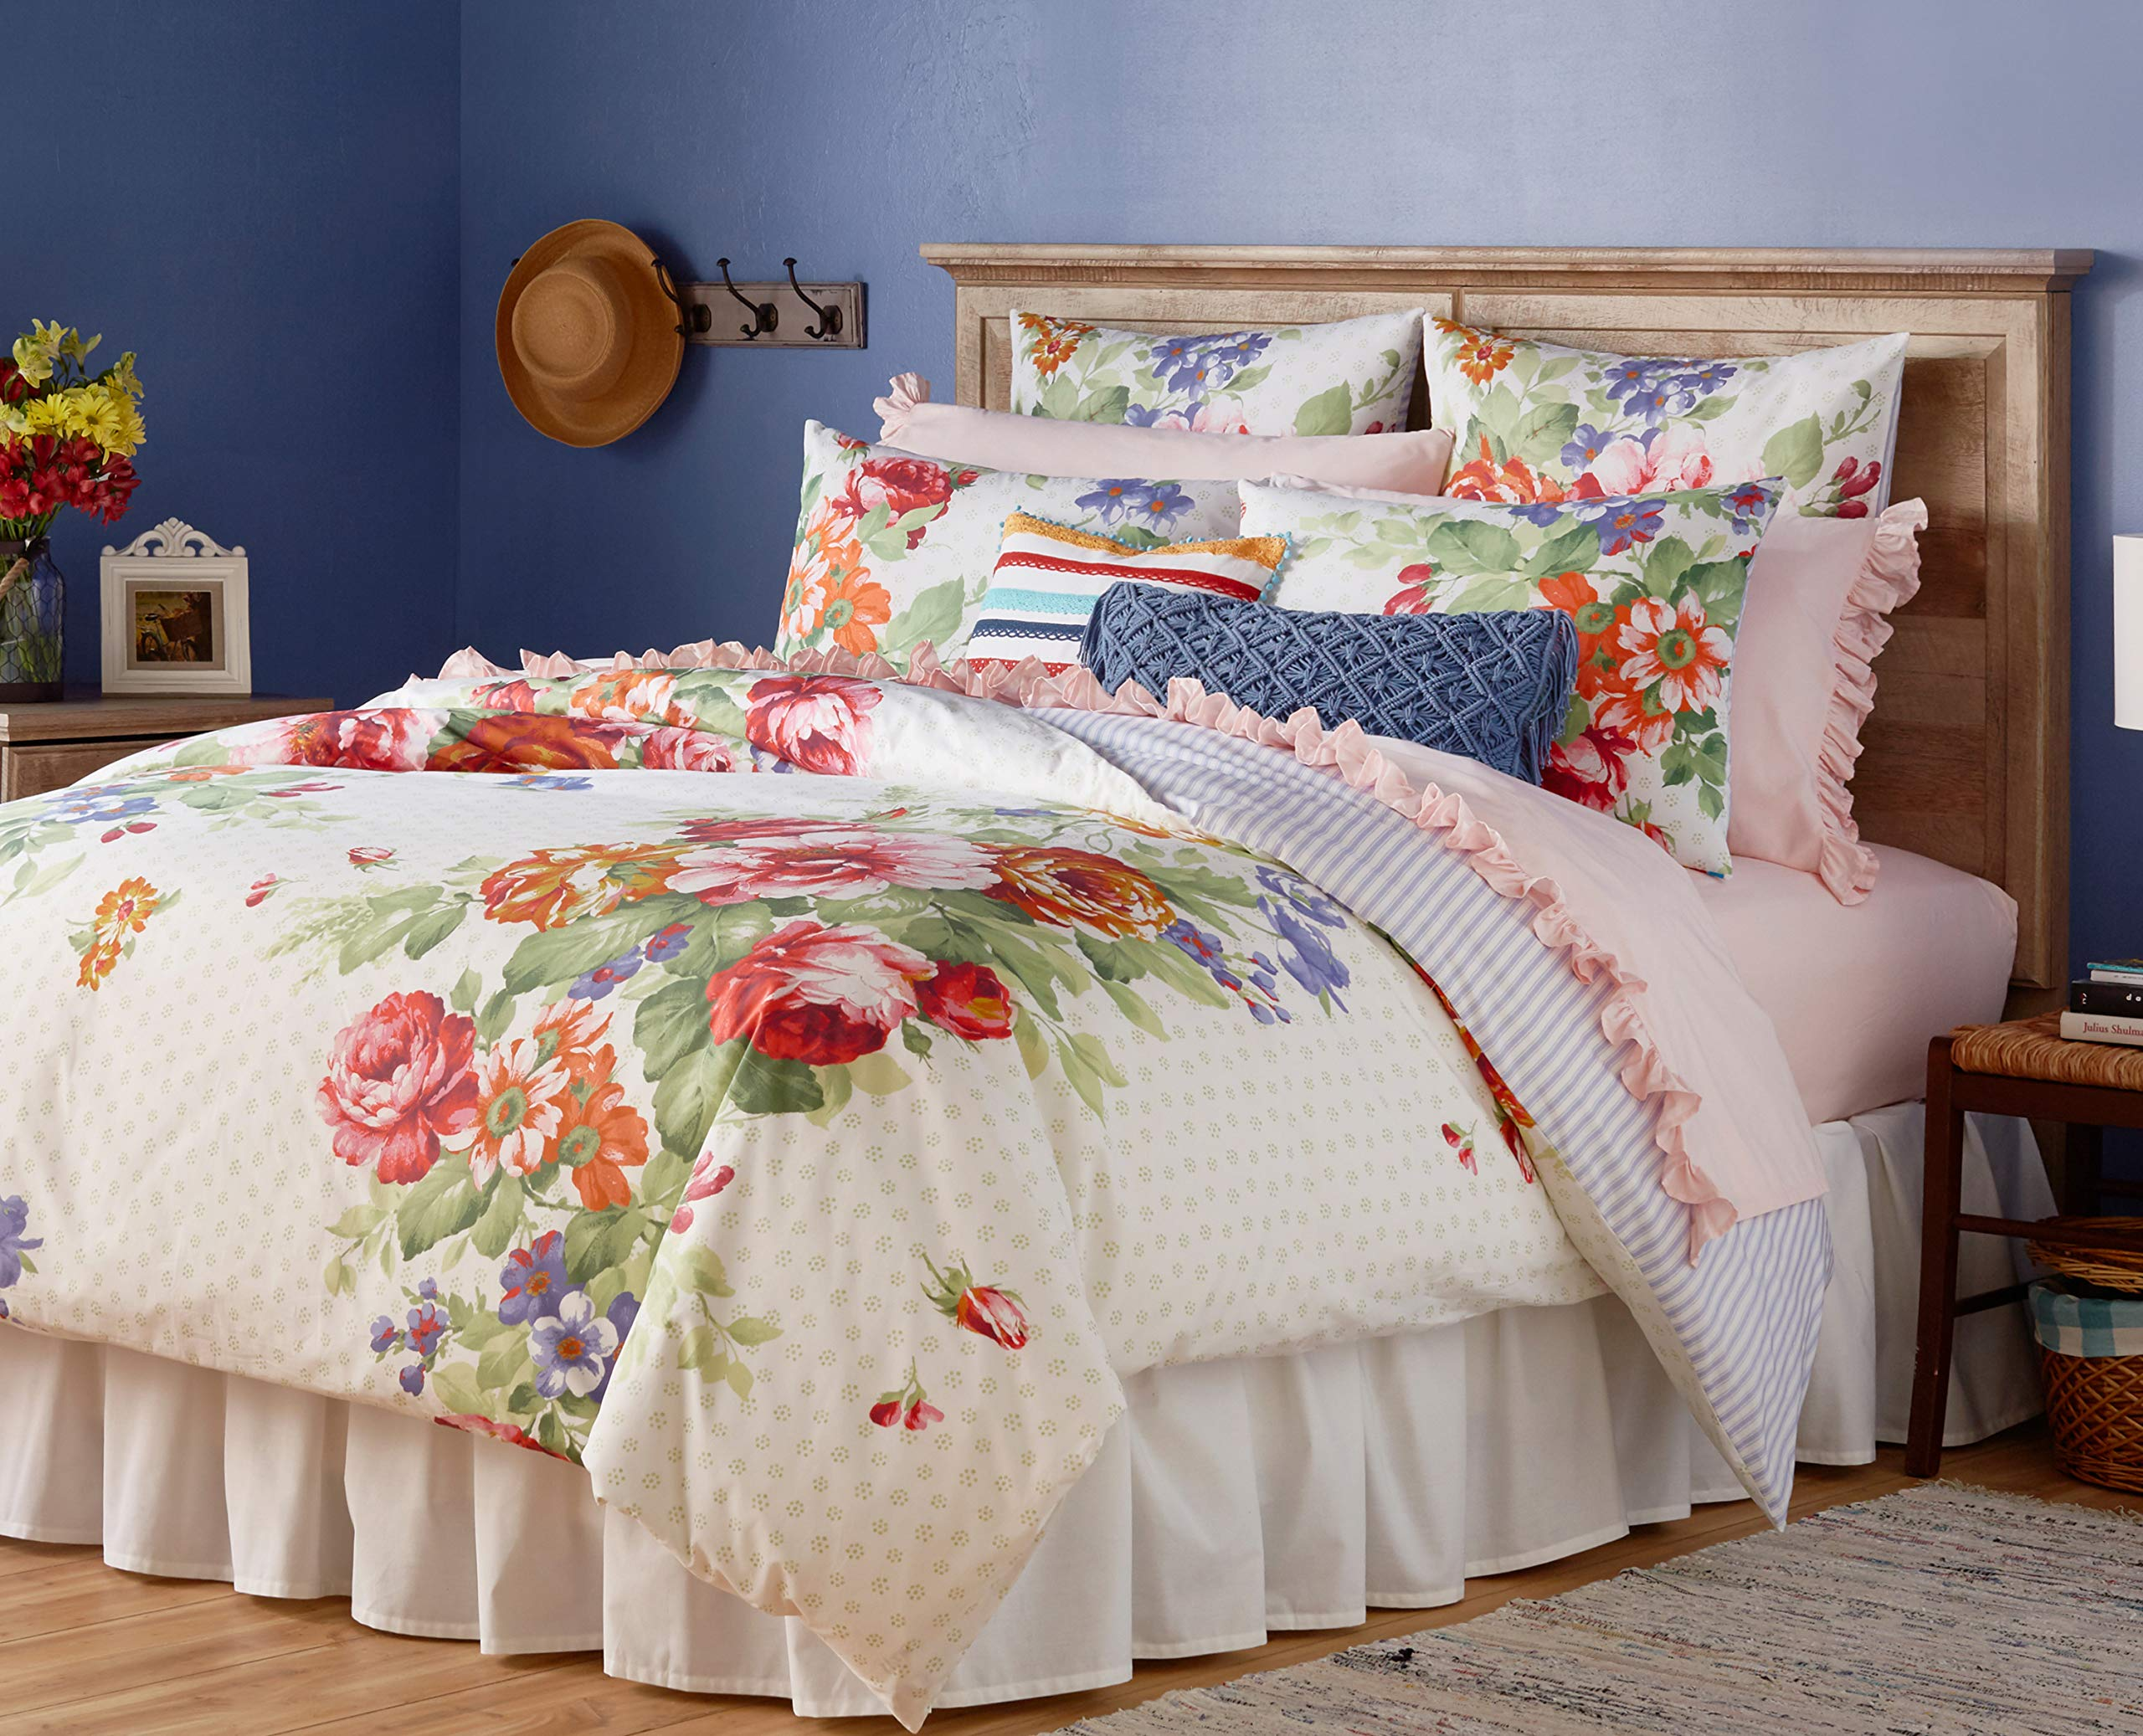 The Pioneer Woman Beautiful Bouquet Duvet Cover, White (full/queen)